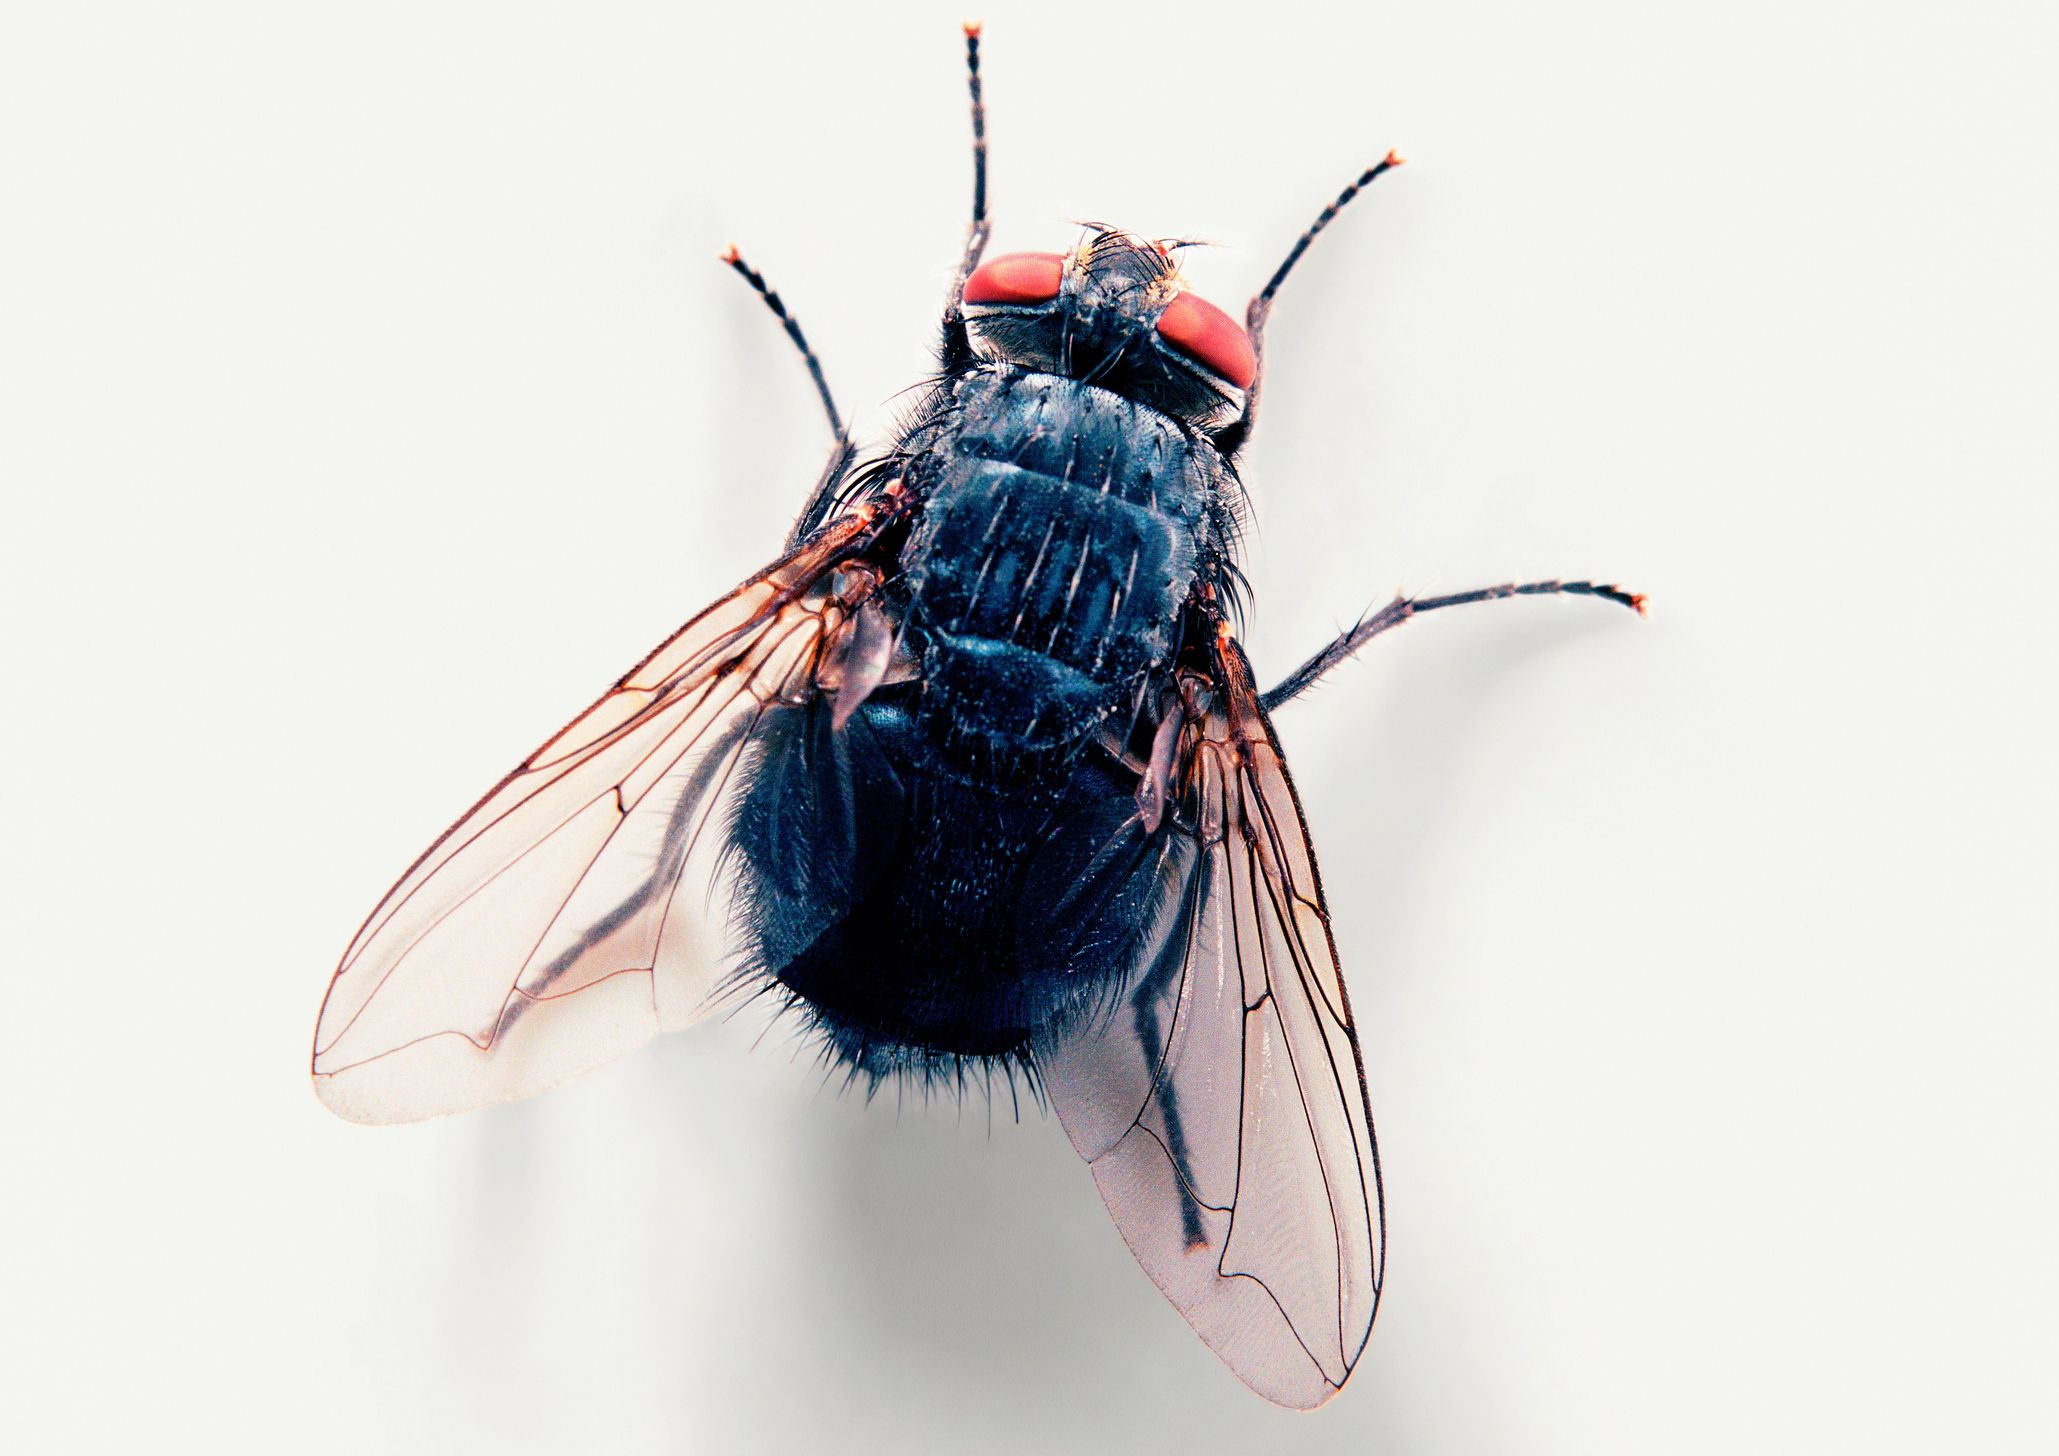 10 Fascinating Facts About House Flies